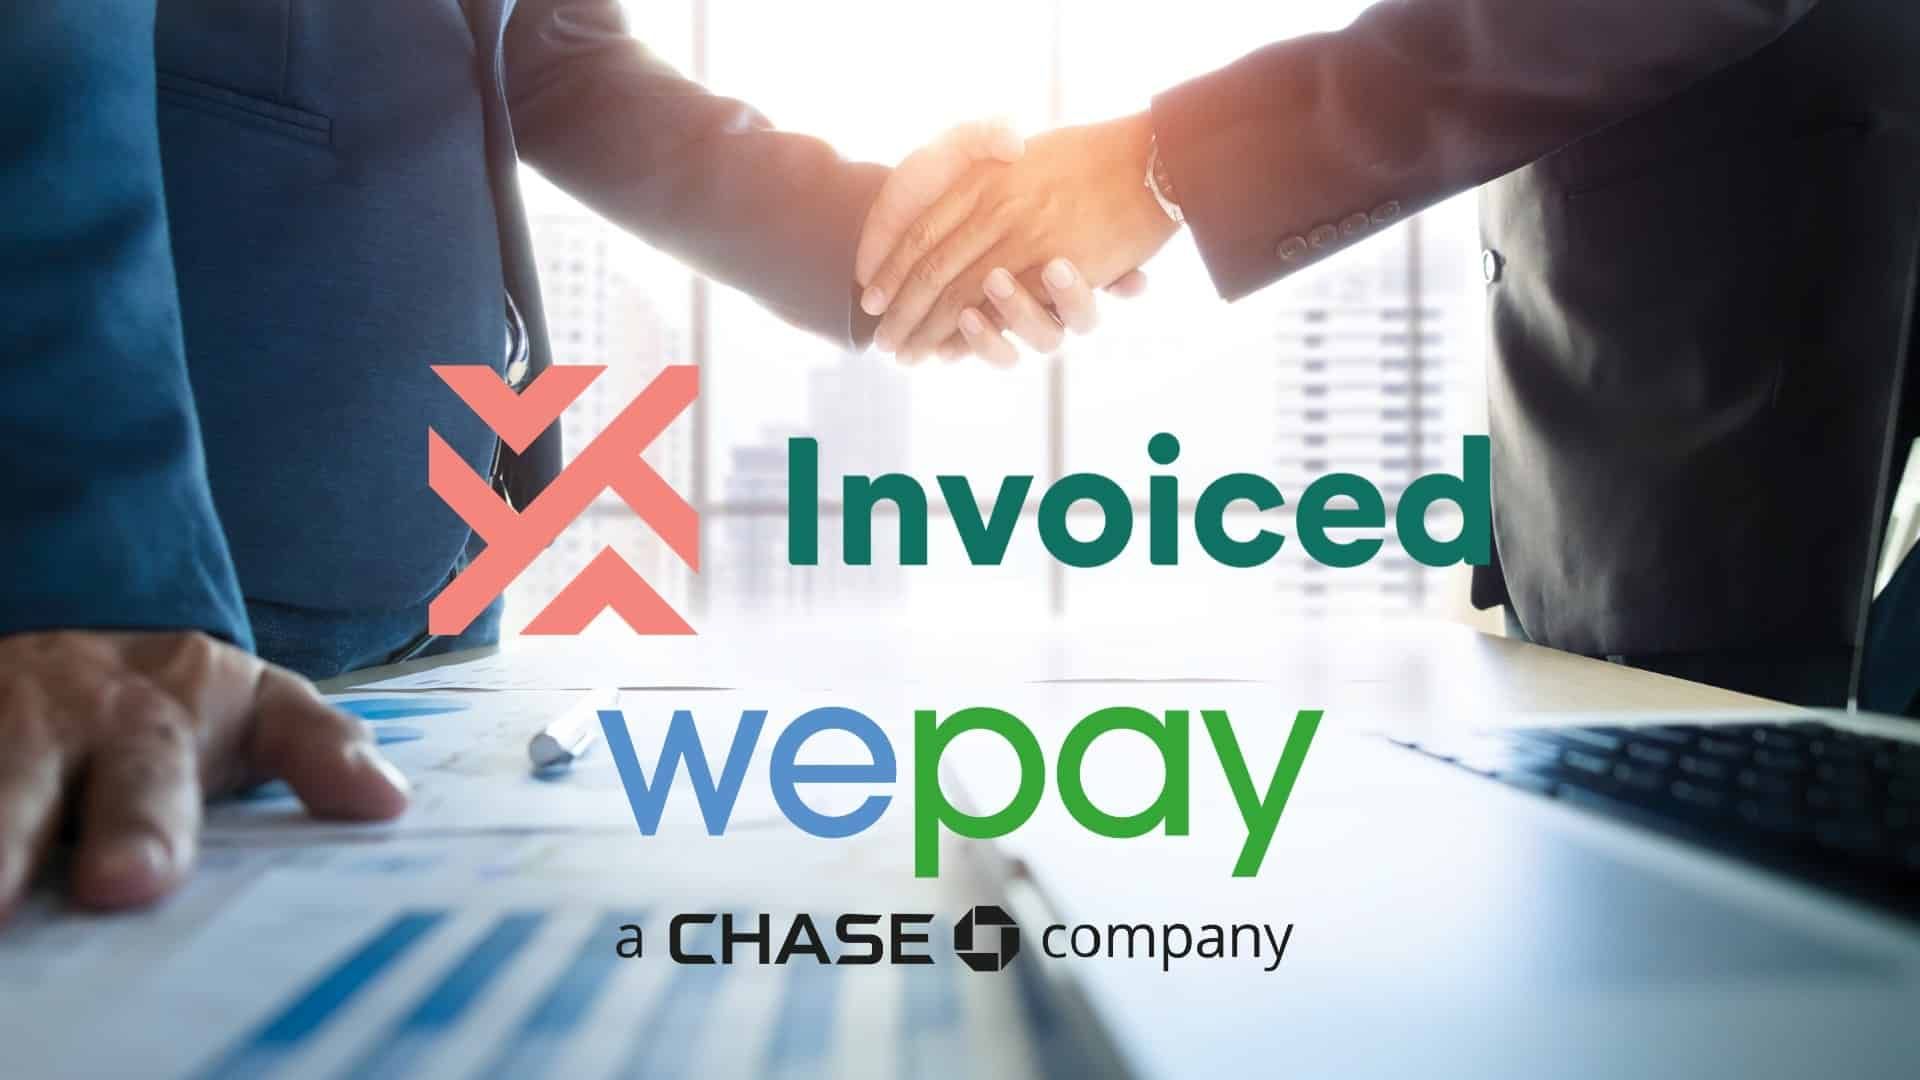 Invoiced Partners With Chase Bank's WePay to Provide Invoiced Payments